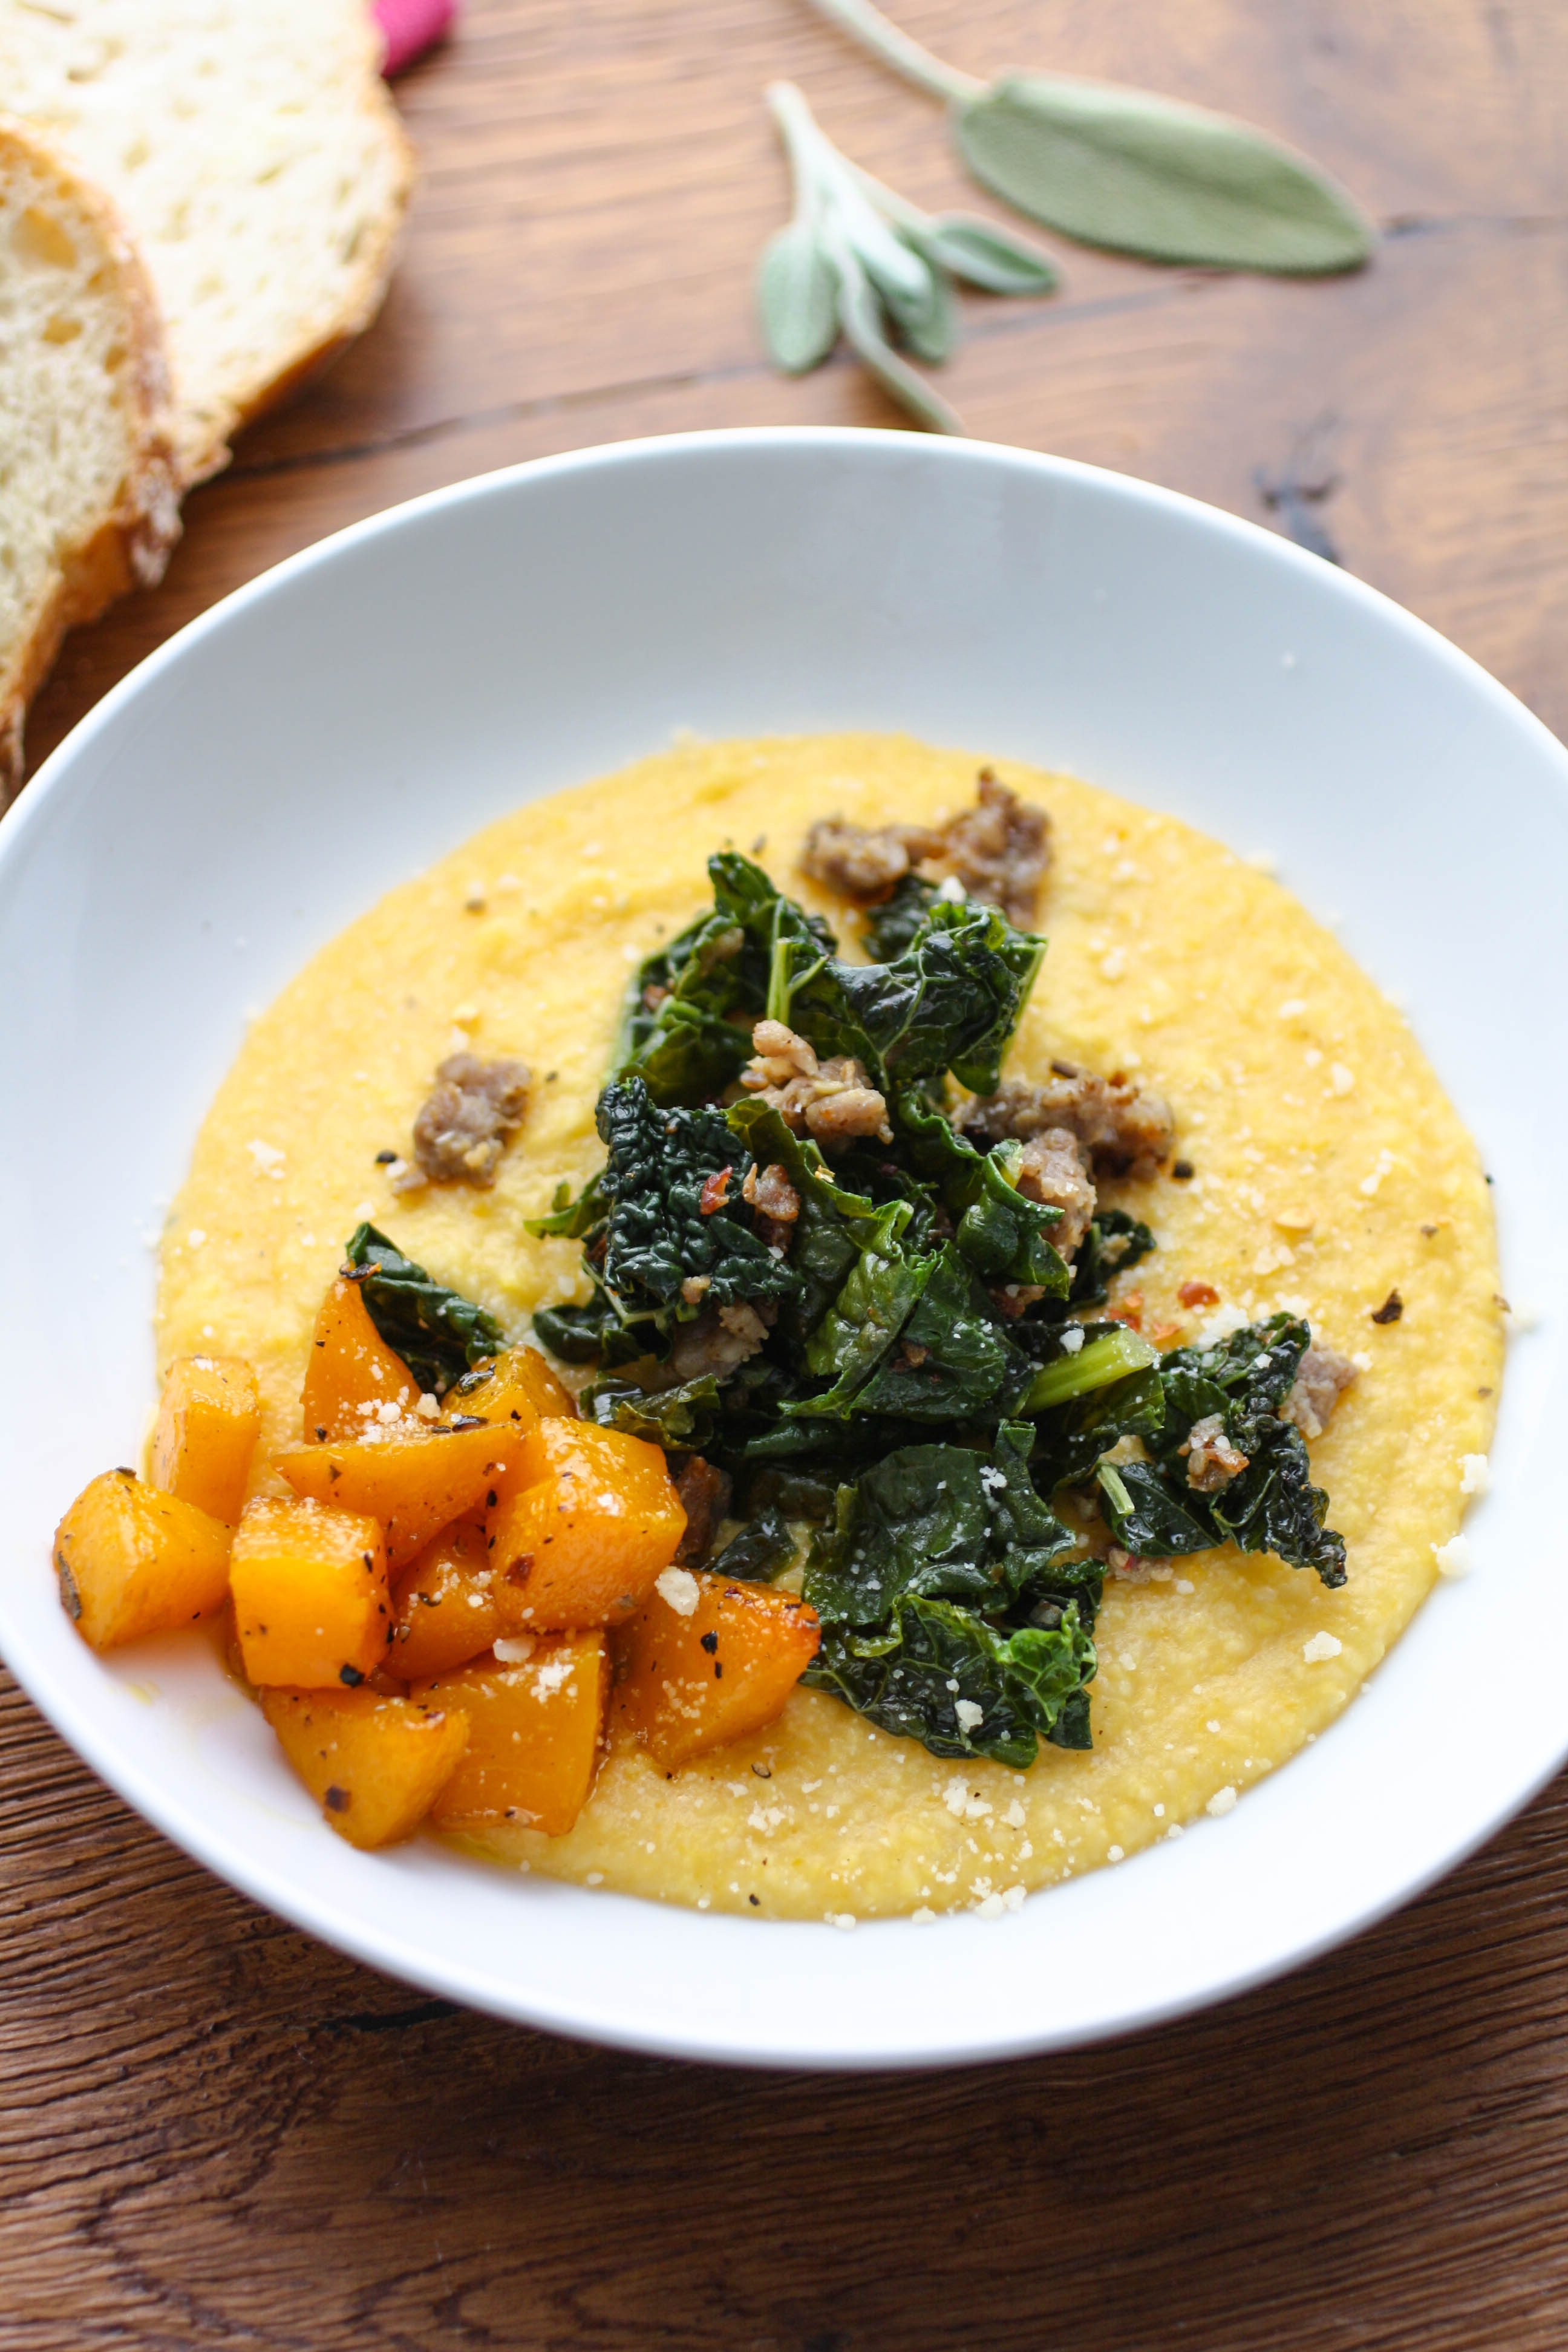 Butternut Squash Grits with Sausage and Kale is a comforting and delicious dish. You'll enjoy serving this grits dish on a chilly night.